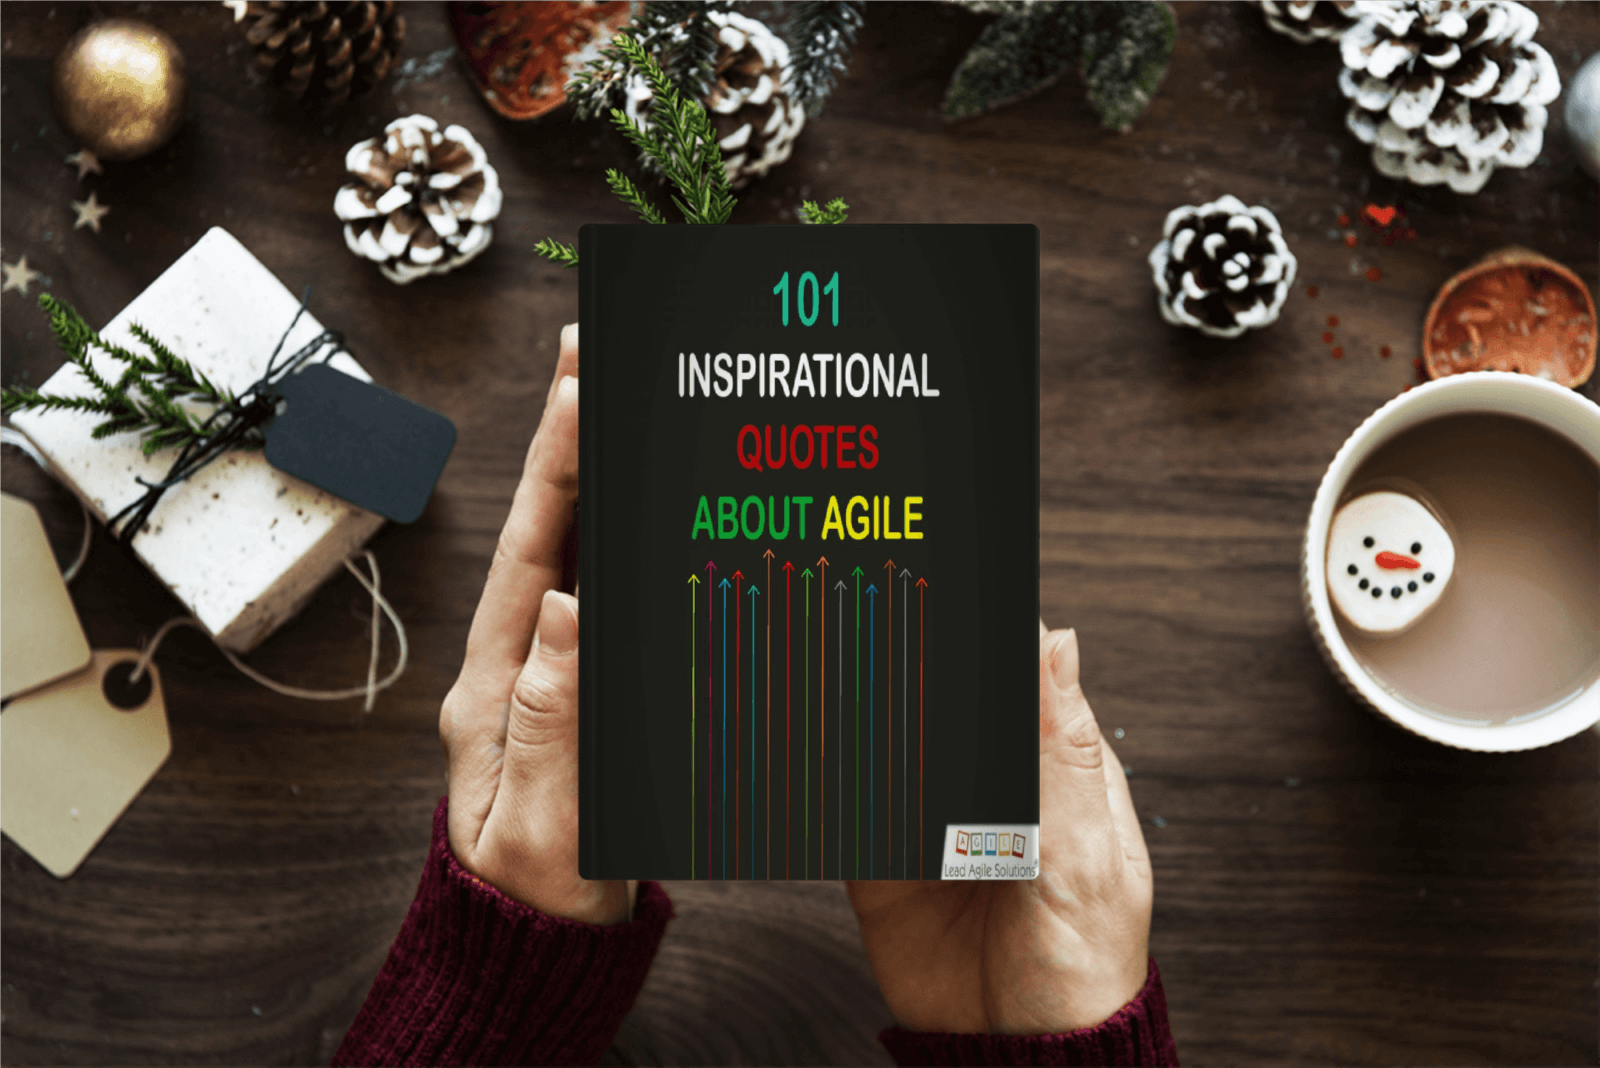 101 Inspirational Quotes about Agile